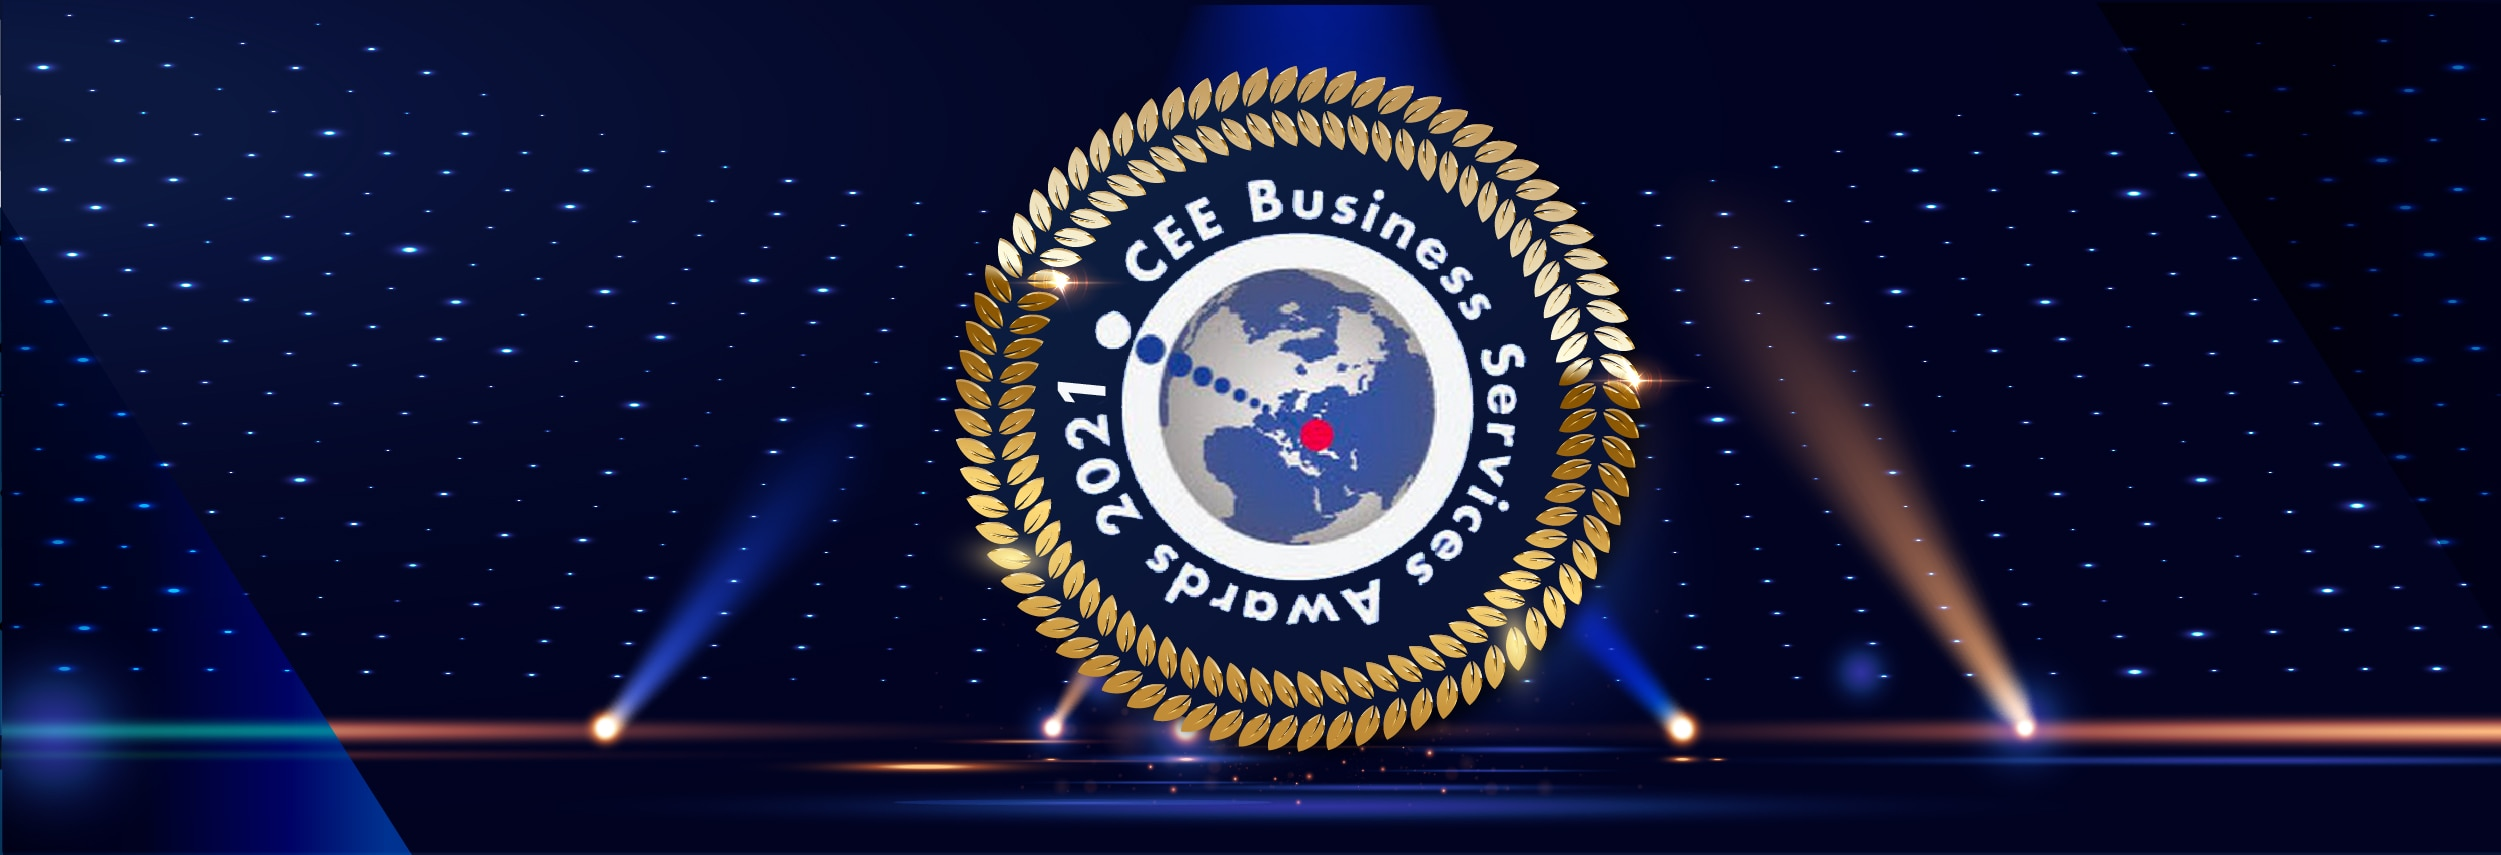 Ness Wins CEE Business Services Award